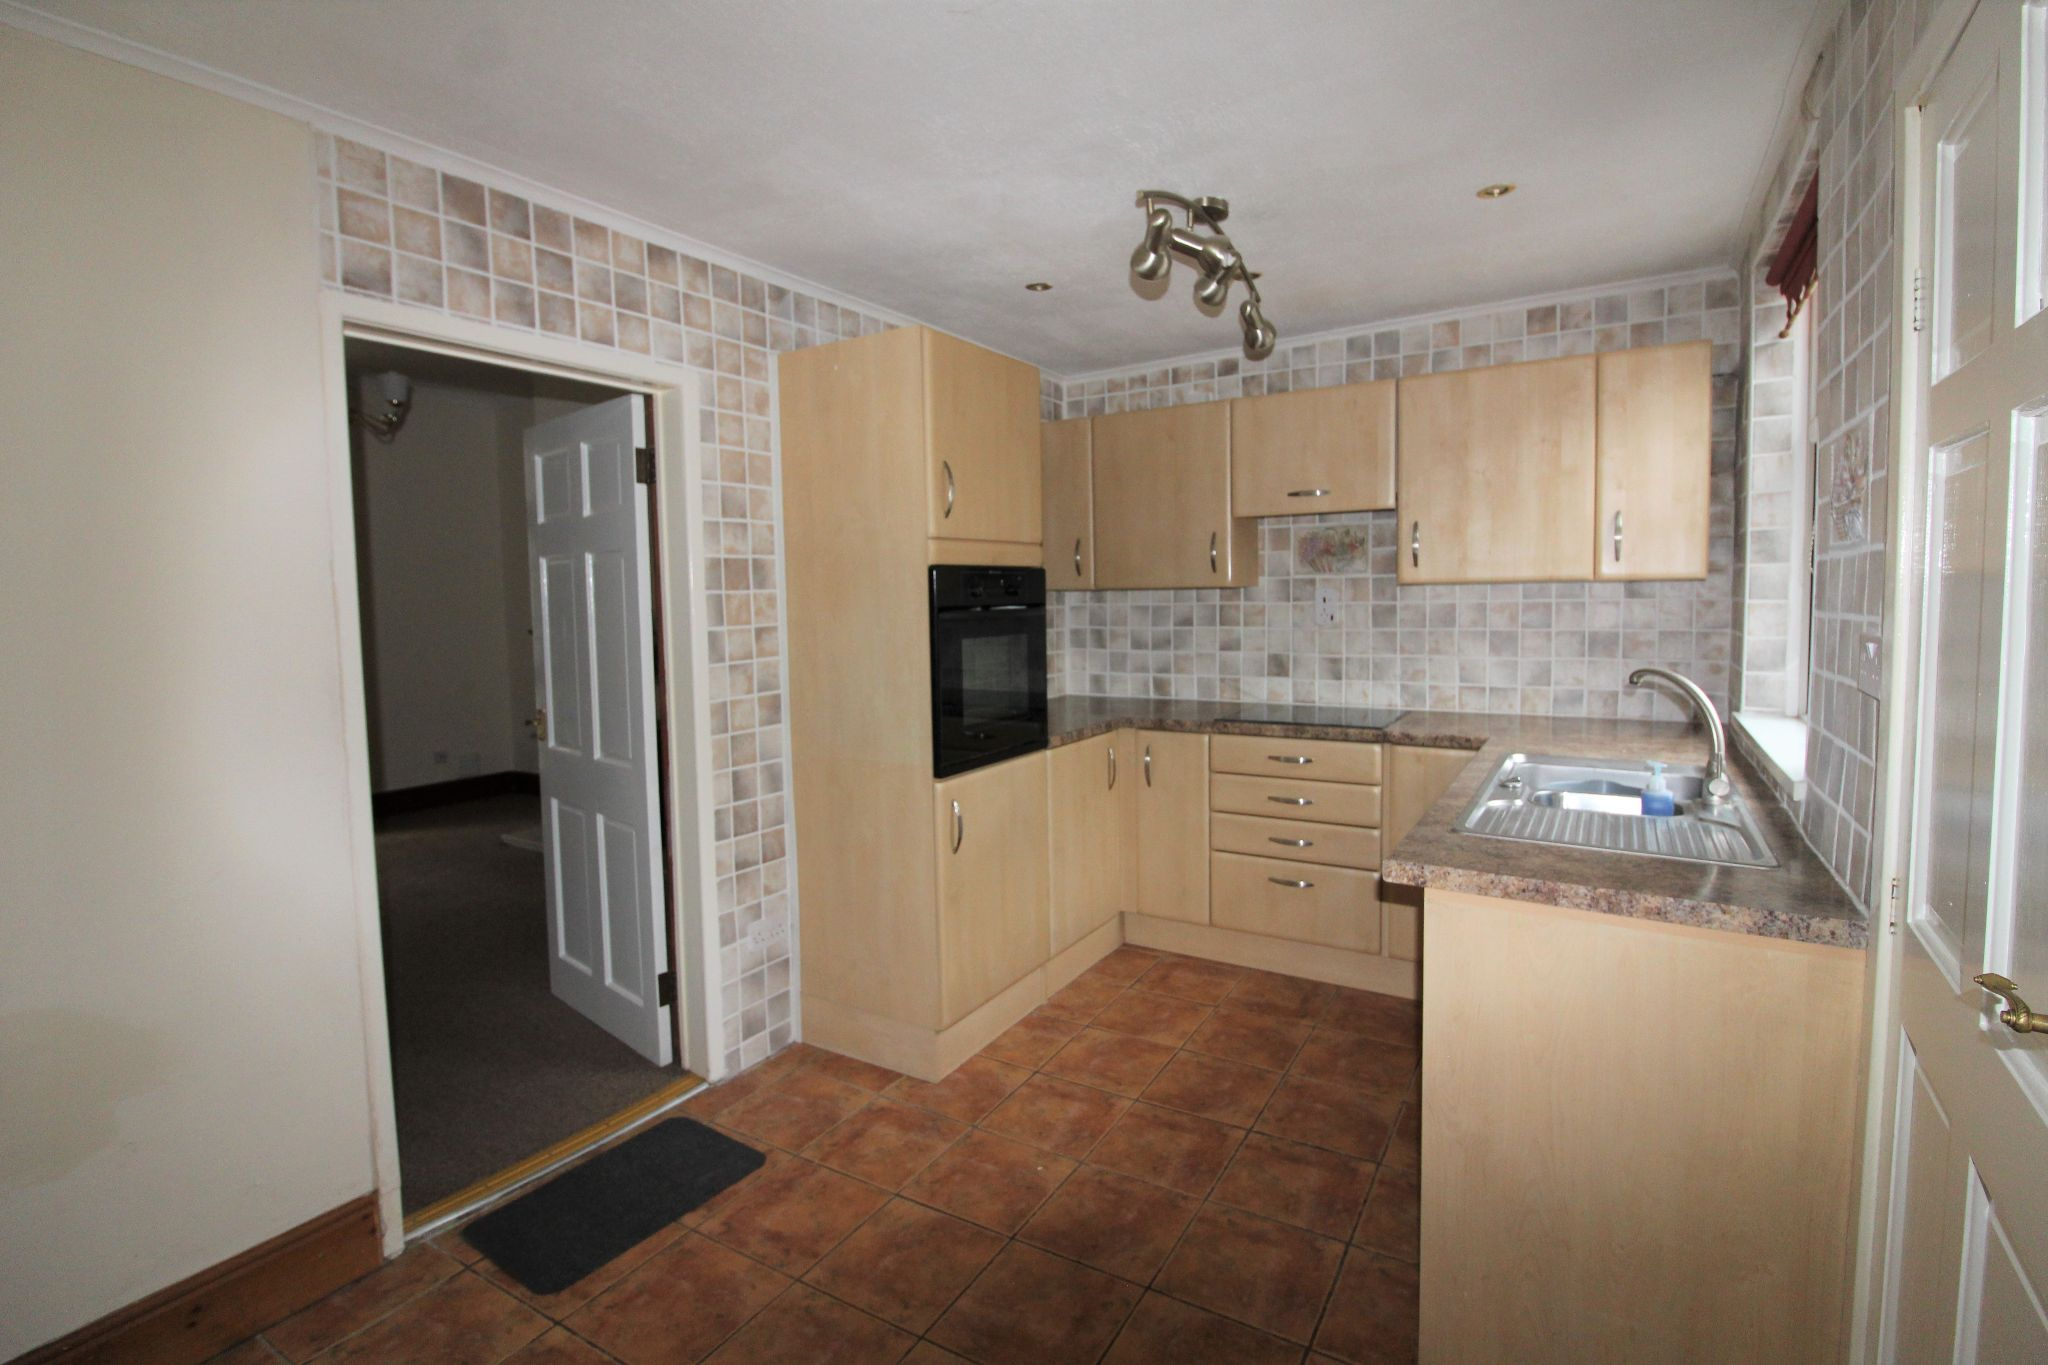 3 bedroom end terraced house For Sale in Willington And Hunwick - Photograph 40.